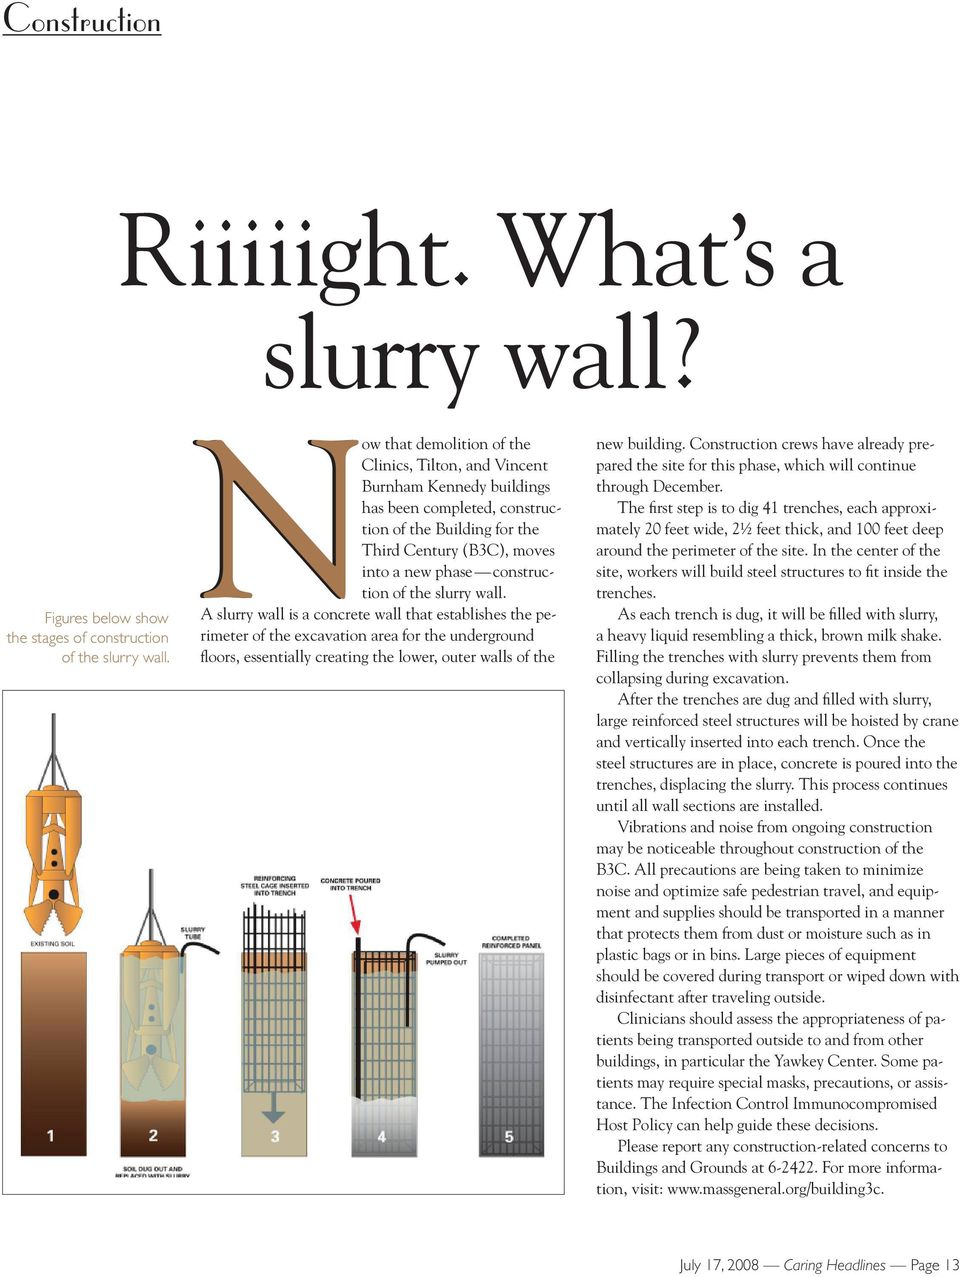 the slurry wall. A slurry wall is a concrete wall that establishes the perimeter of the excavation area for the underground floors, essentially creating the lower, outer walls of the new building.